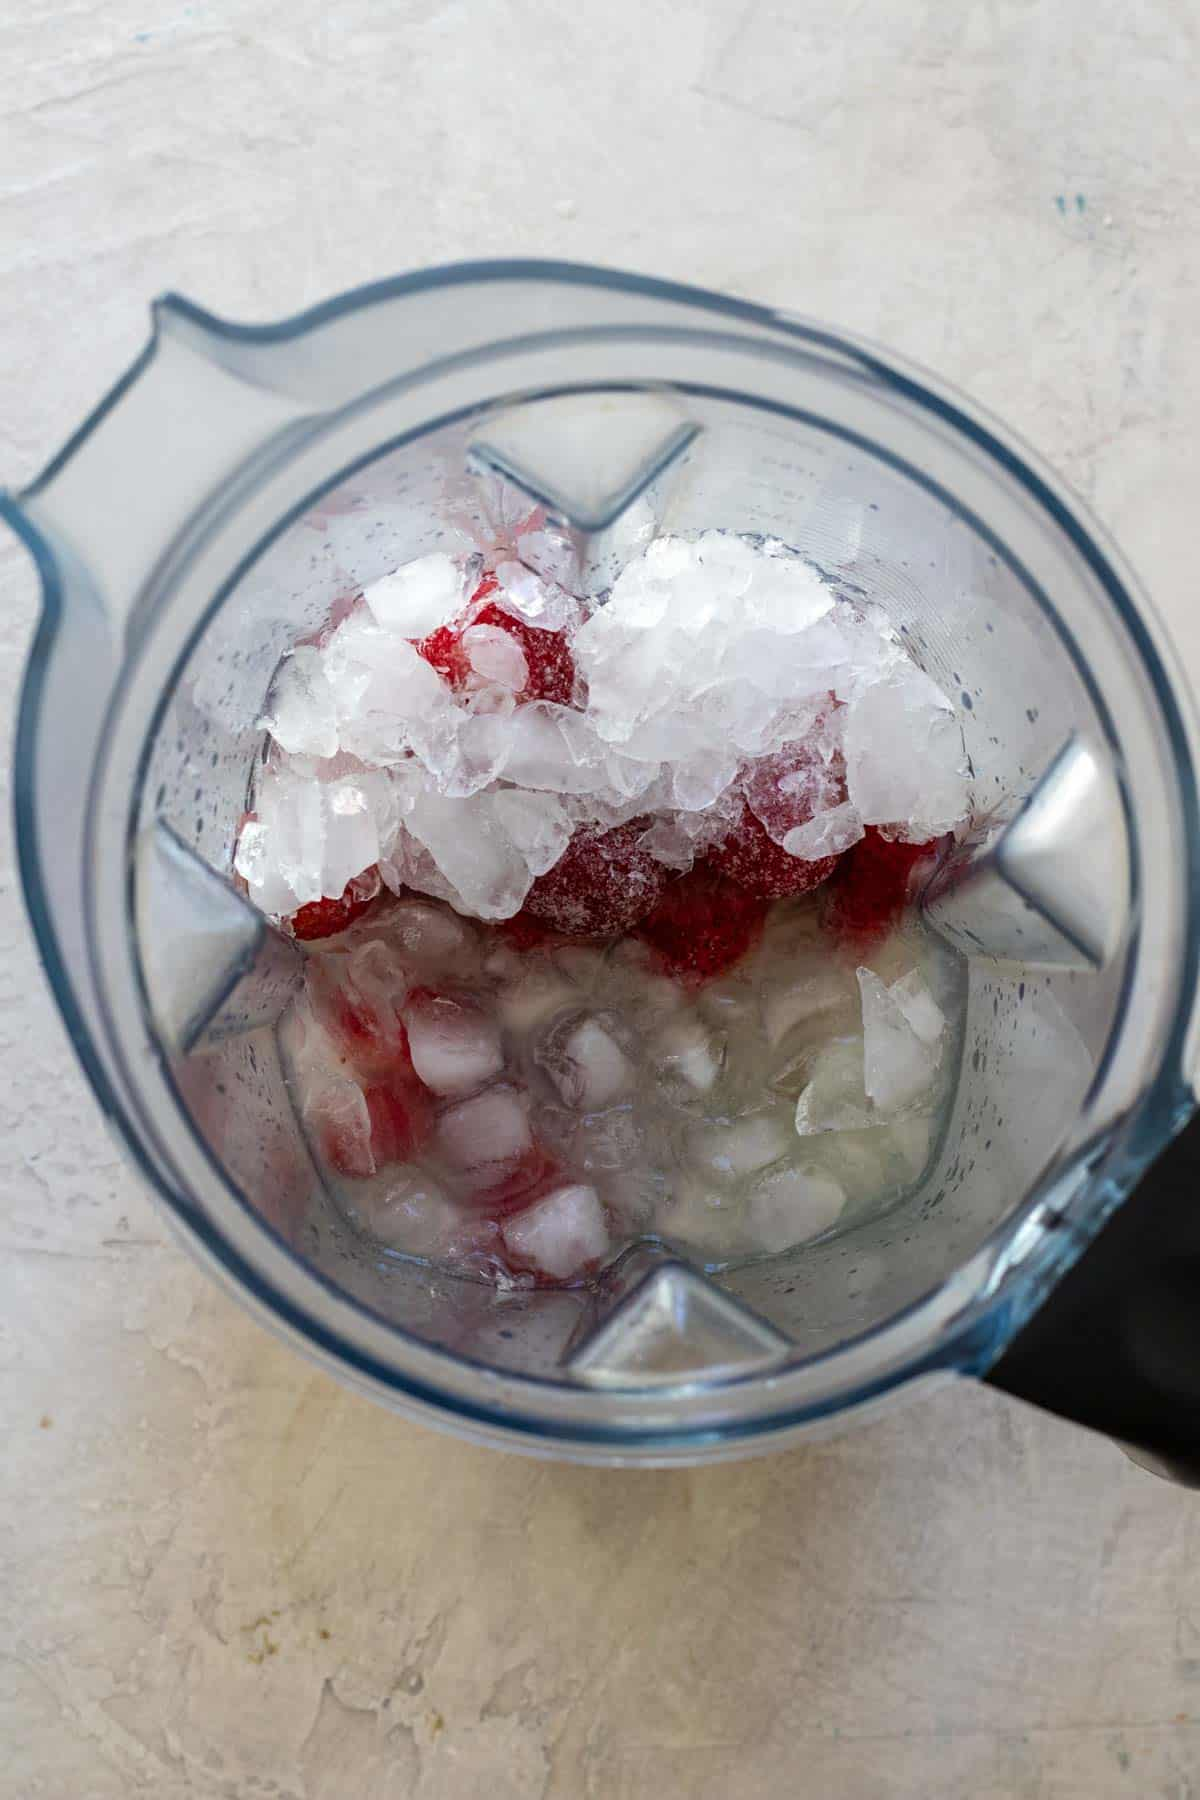 Frozen strawberries, crushed ice, tequila, lime juice and agave in blender before blending.